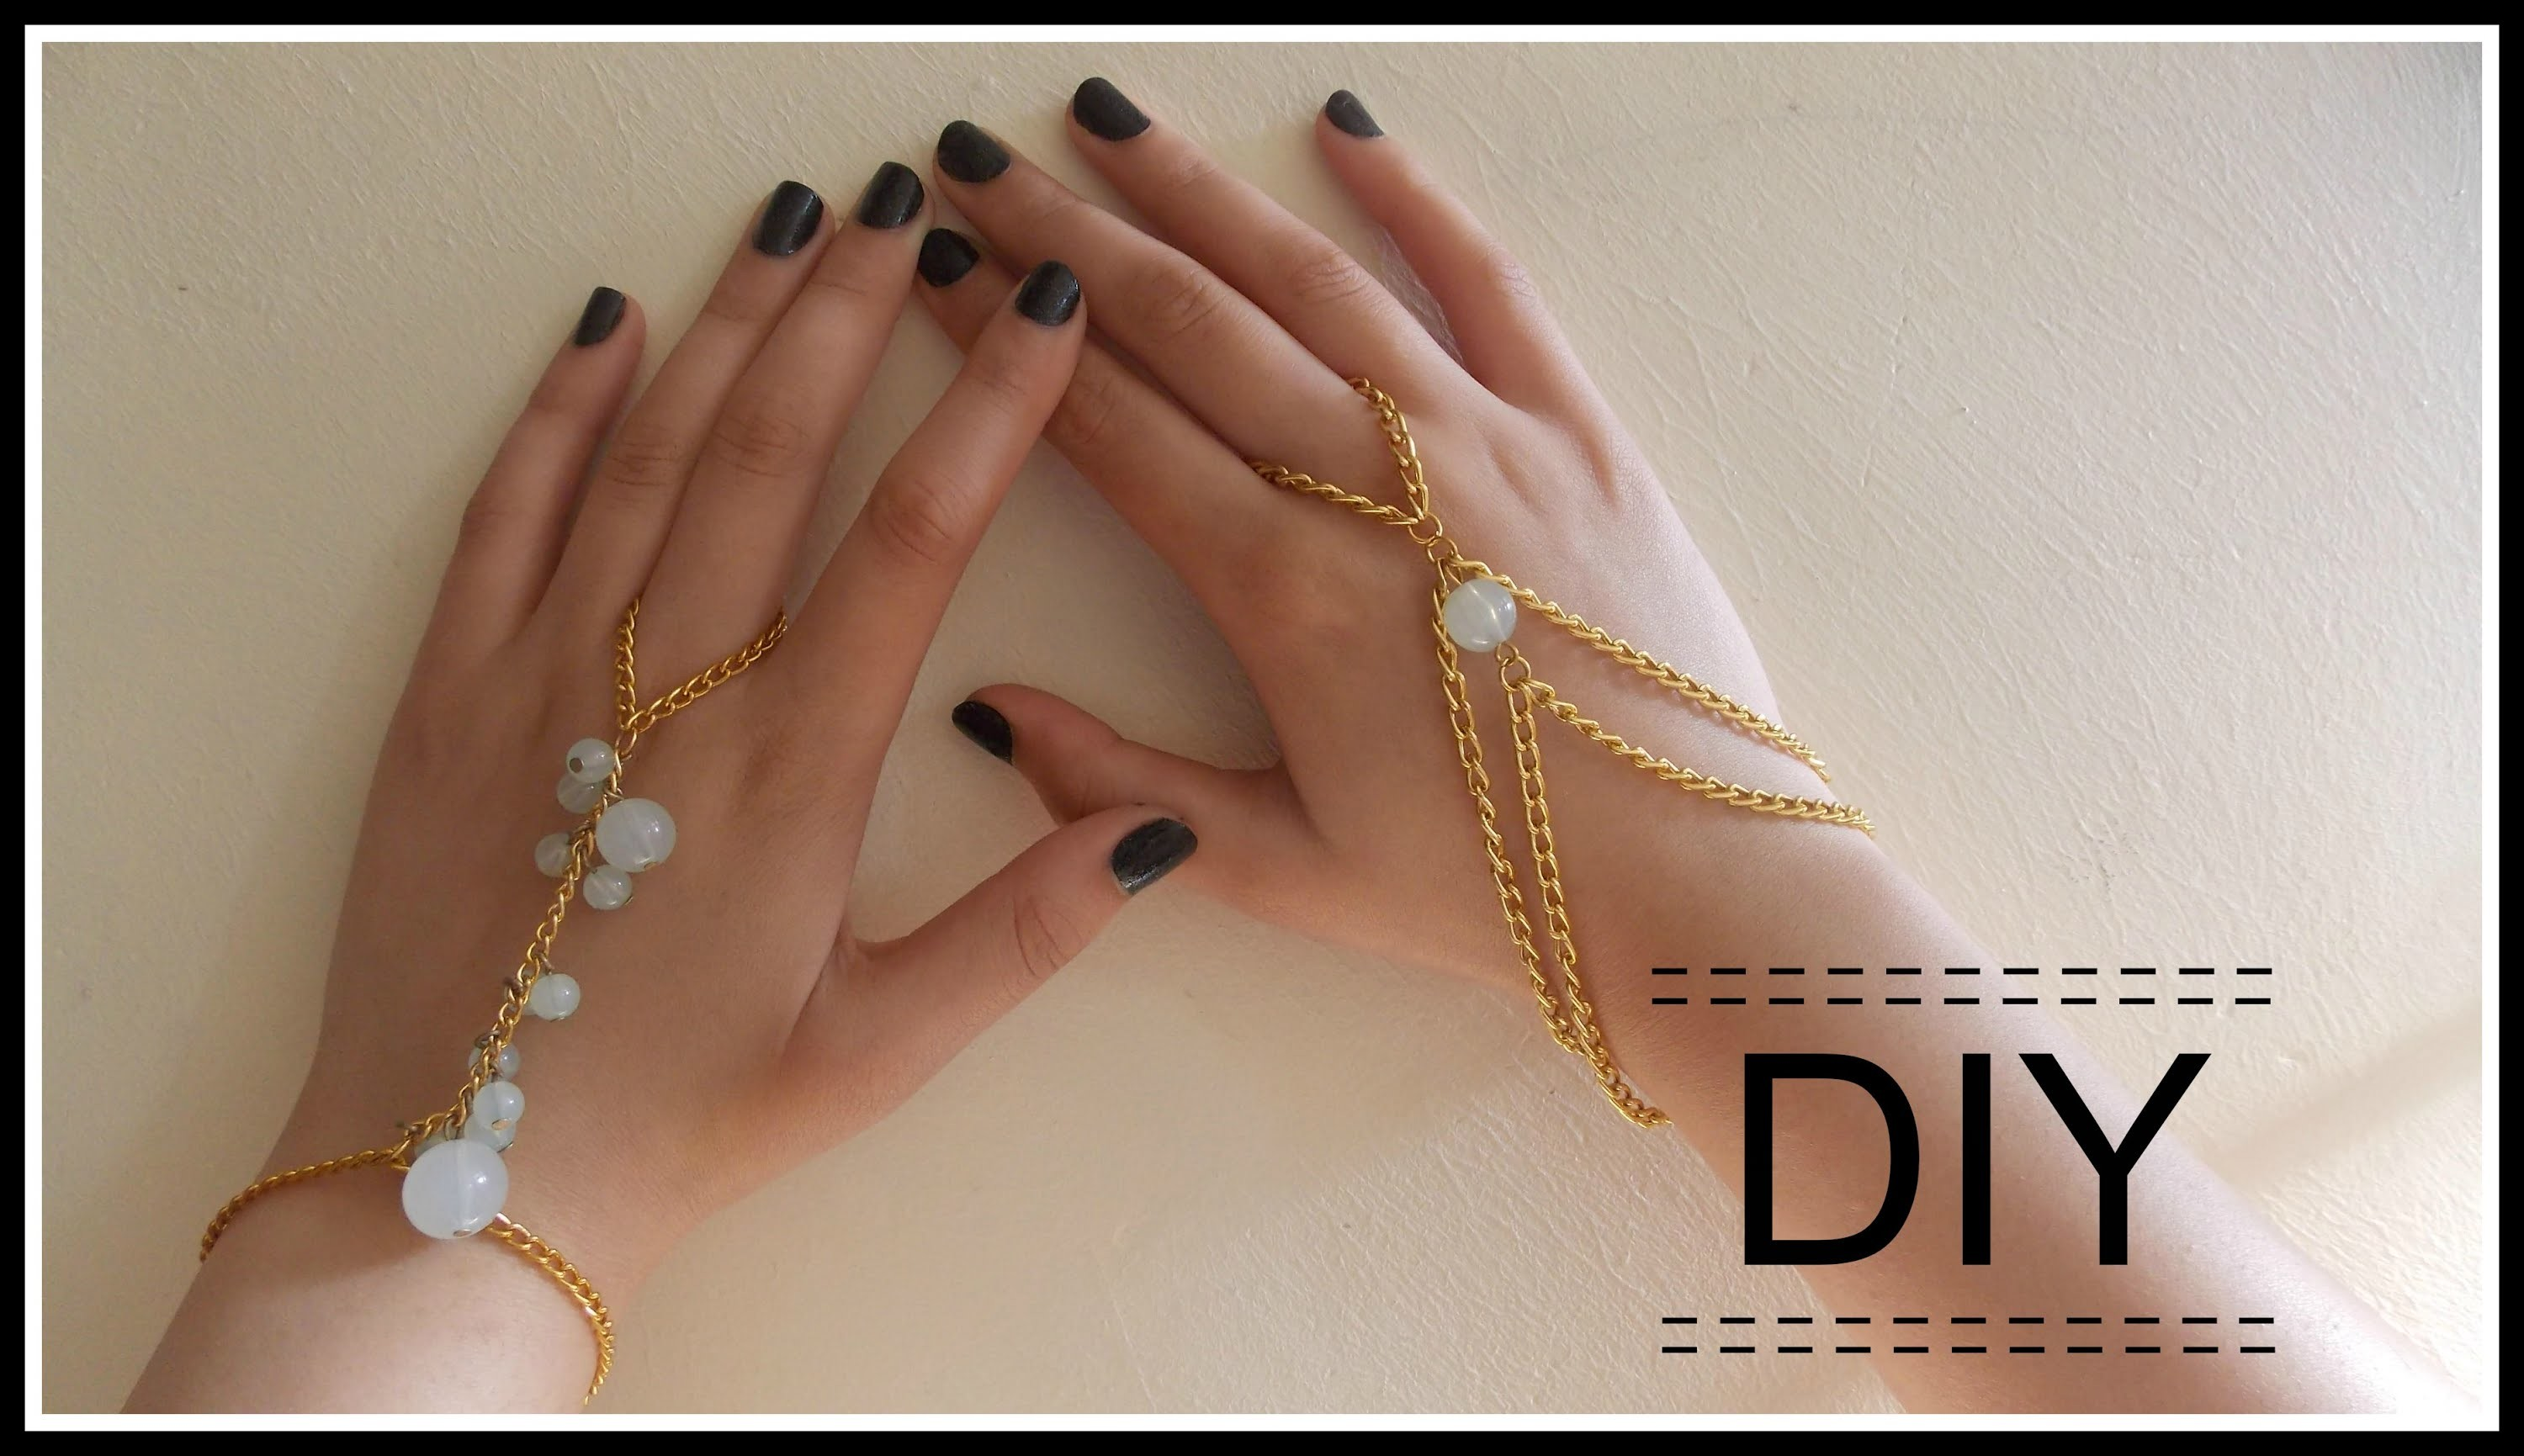 DIY: Hand and ring chain.bracelet [Part 2]